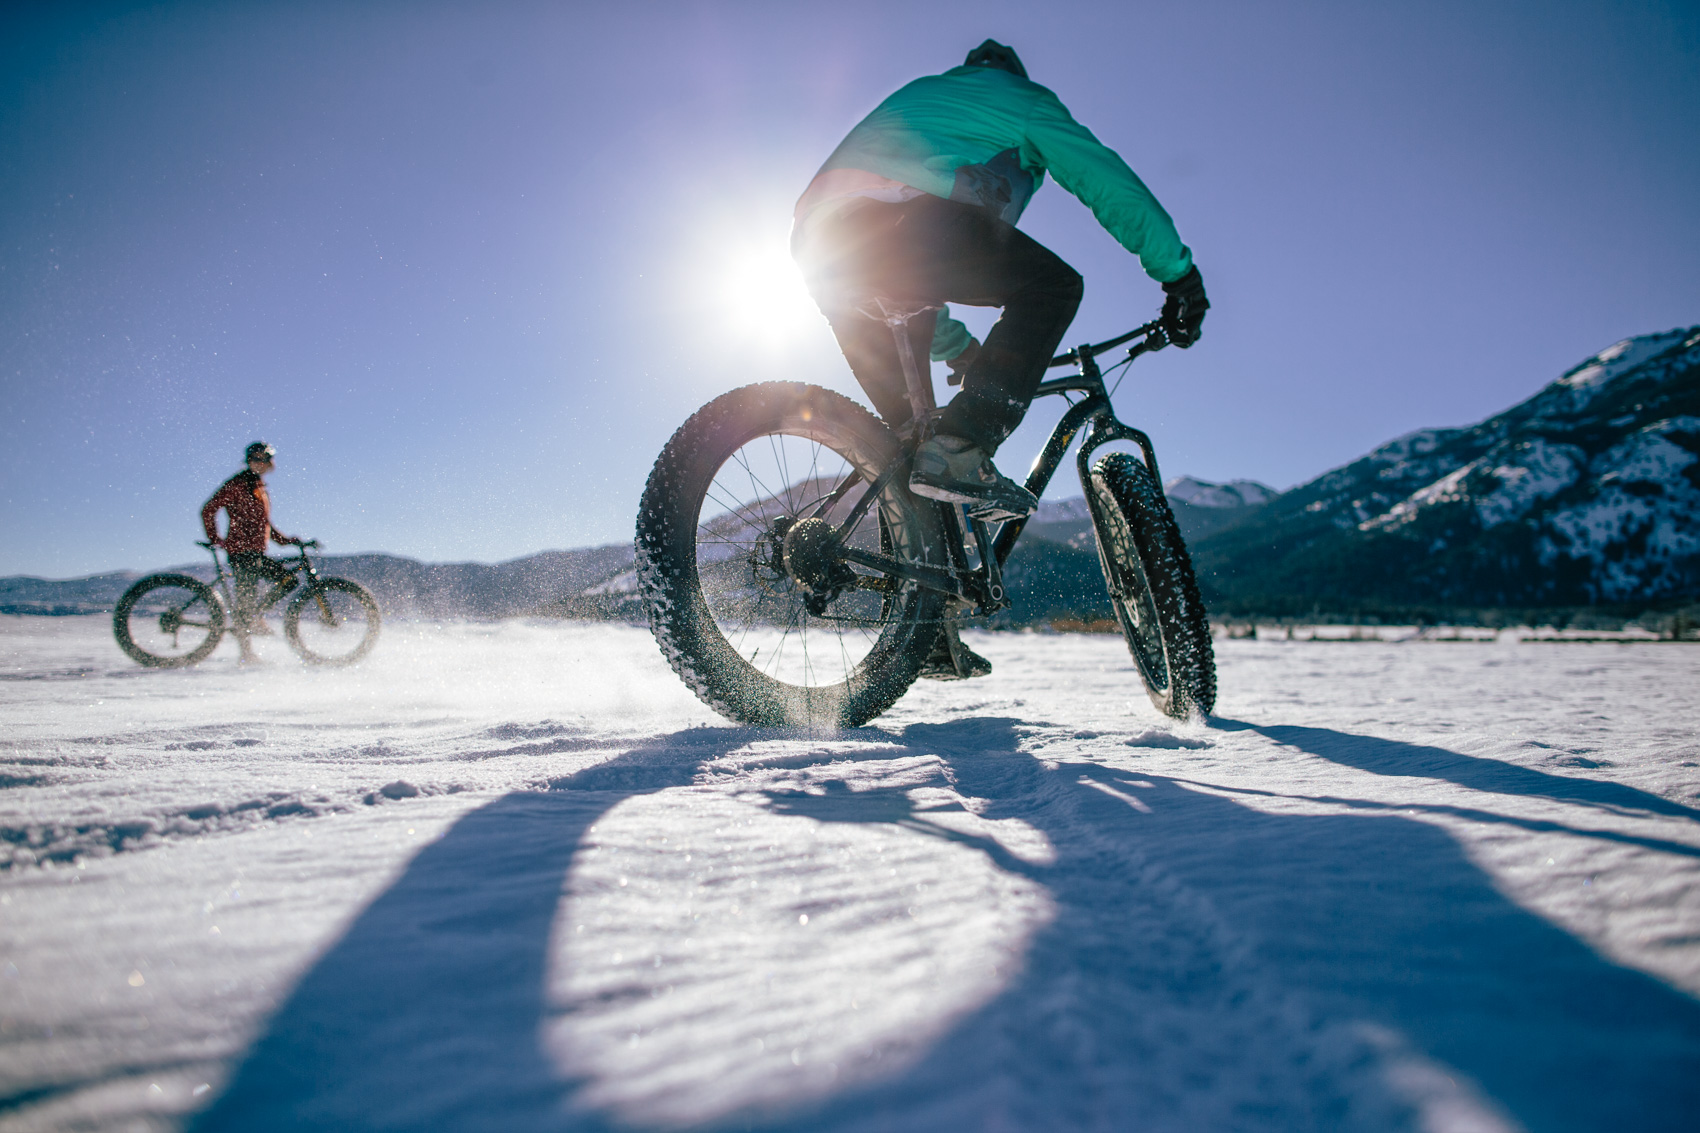 2_23_16_WOT_fatbike0891-Edit